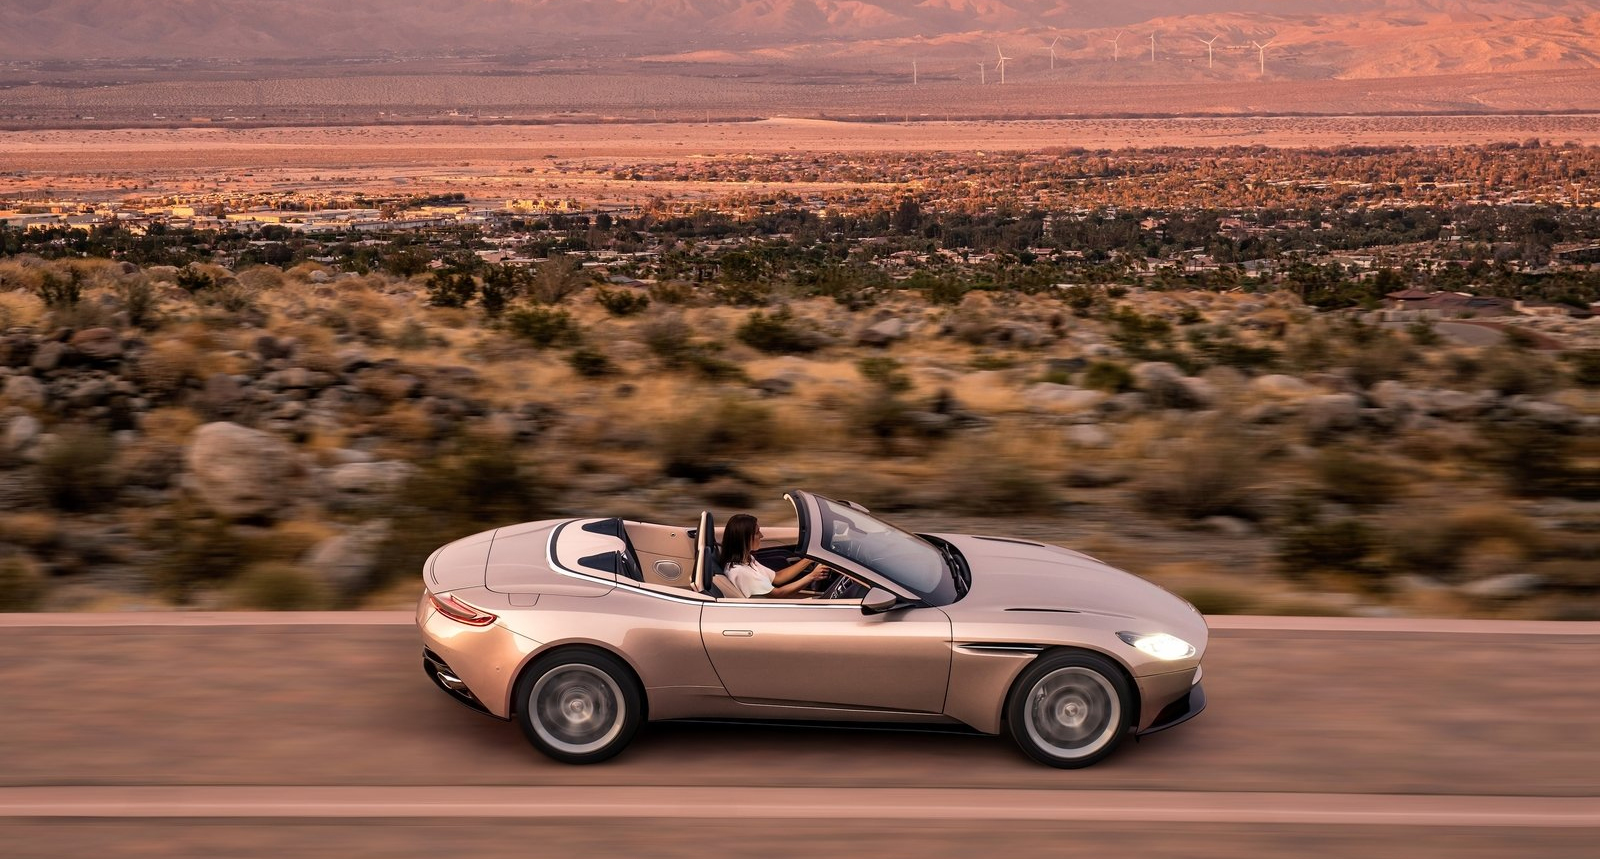 The Aston Martin Db11 Volante Is A Convertible With Class Gentleman S Journal